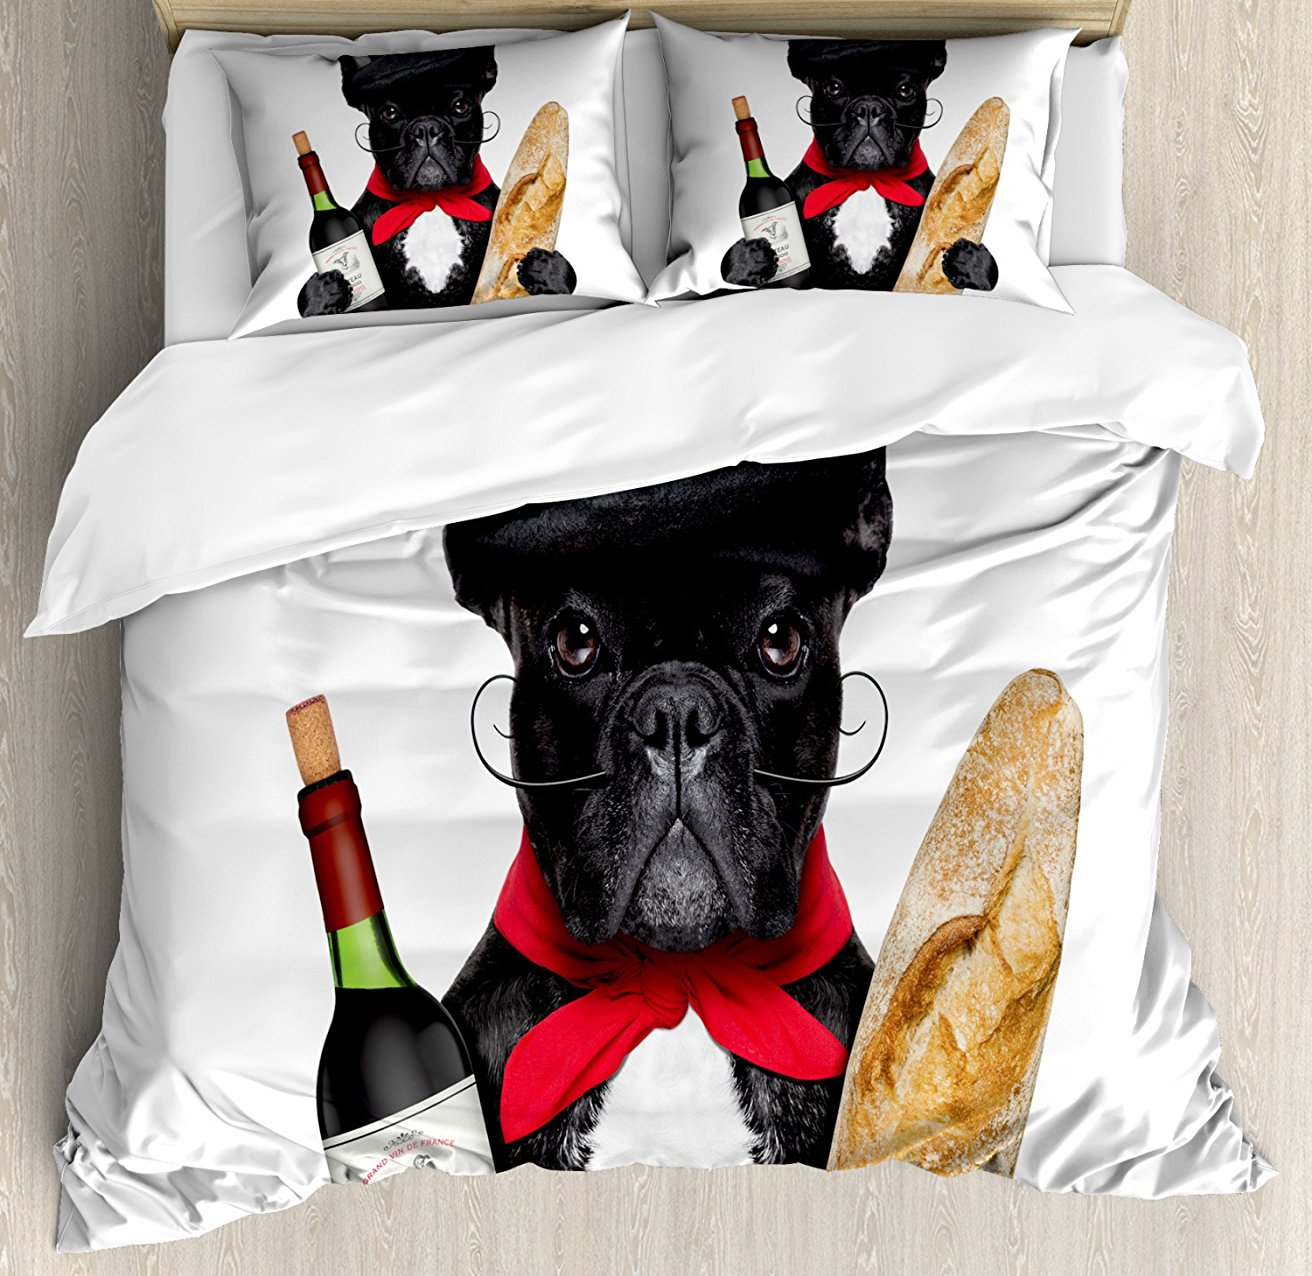 Bulldog Duvet Cover Set French Dog in a Hat with Red Wine and Baguette Bread Gourmet Parisienne Animal 4 Piece Bedding Set